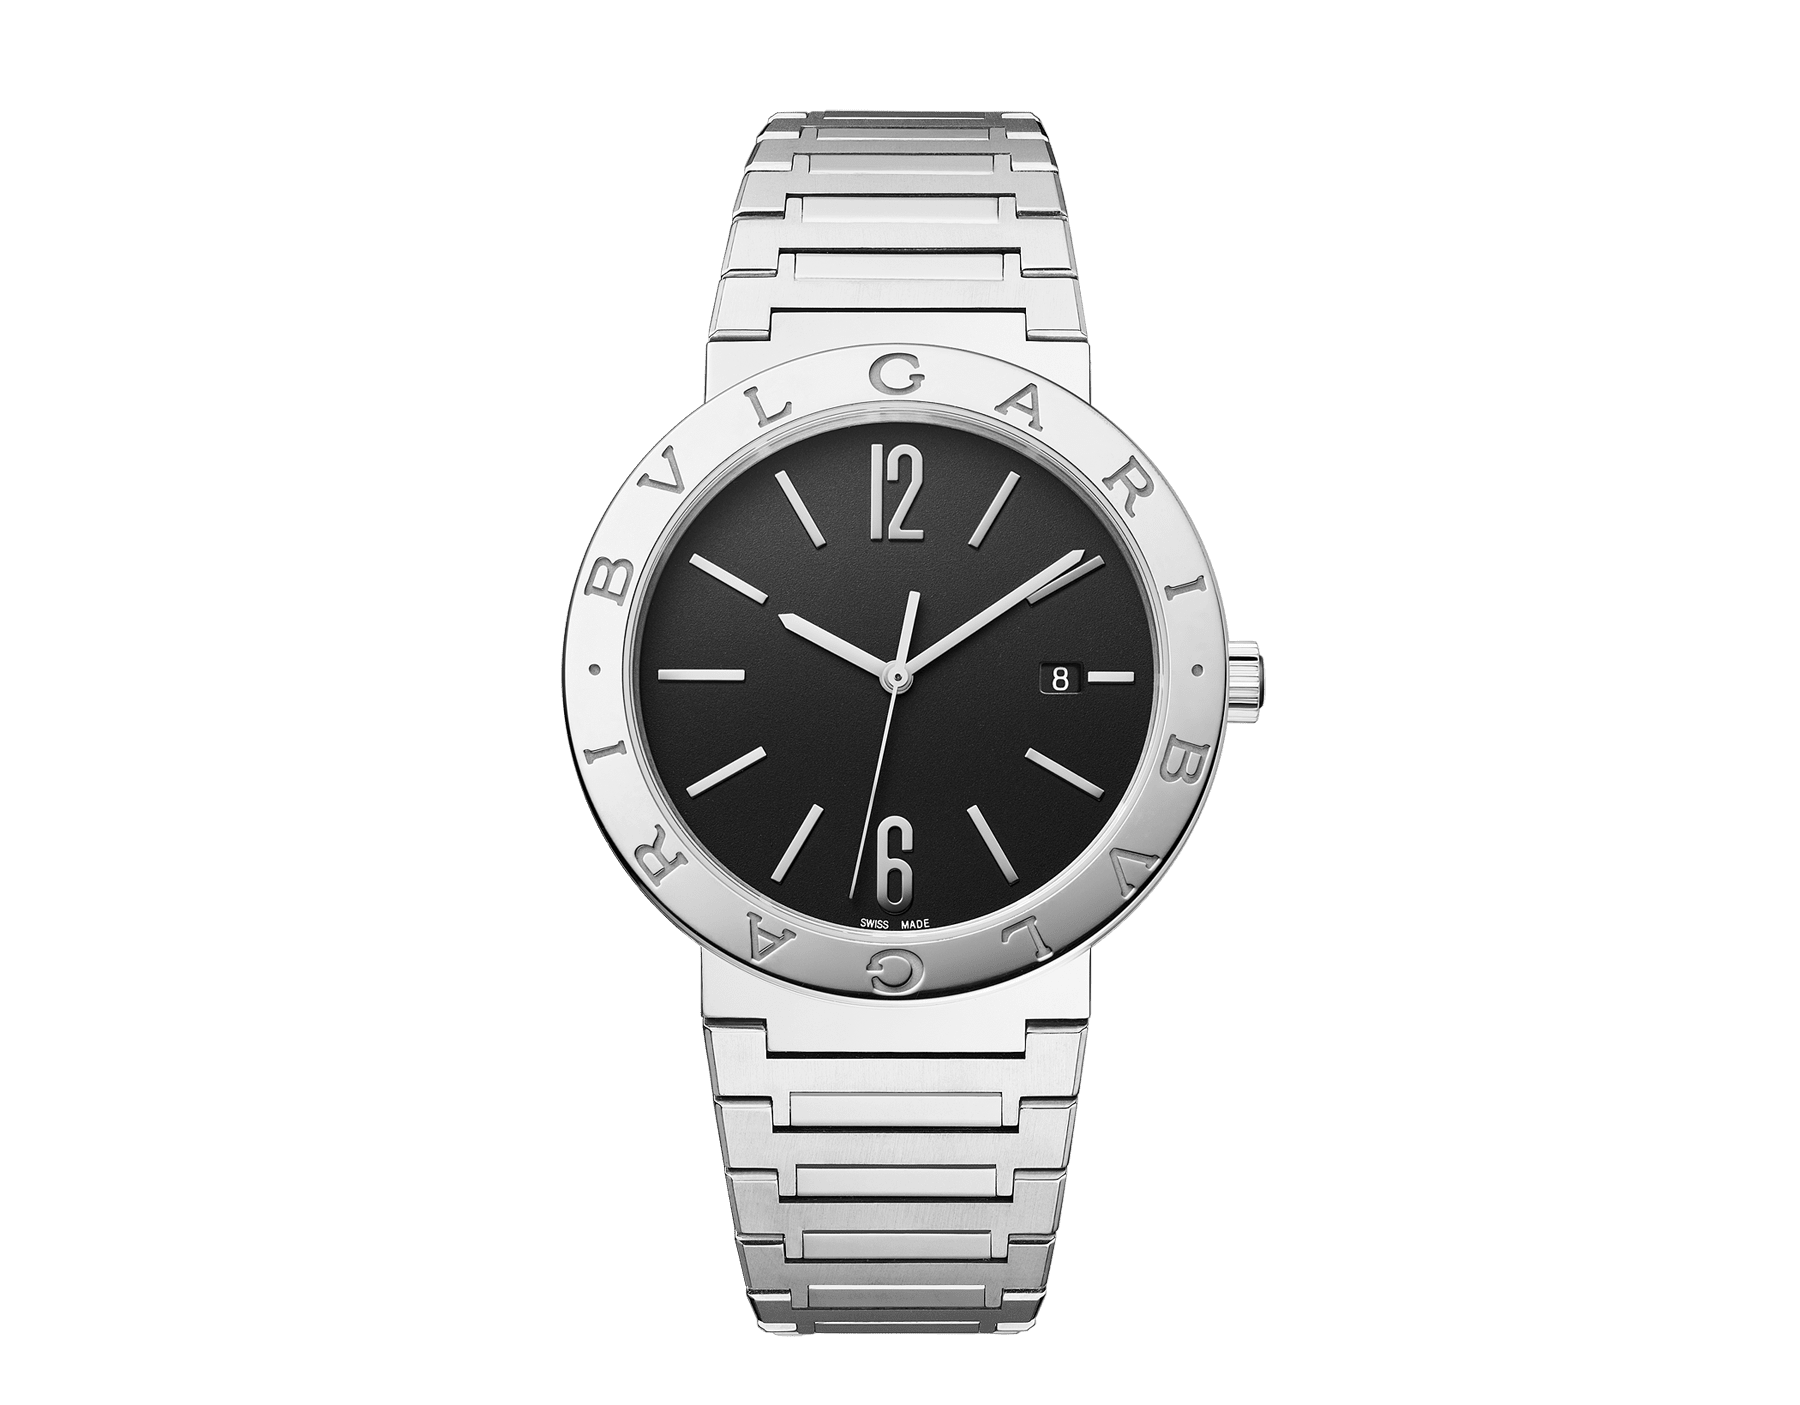 BVLGARI BVLGARI Solotempo watch with mechanical manufacture movement, automatic winding and date, stainless steel case and bracelet, stainless steel bezel engraved with double logo and black dial 102928 image 1